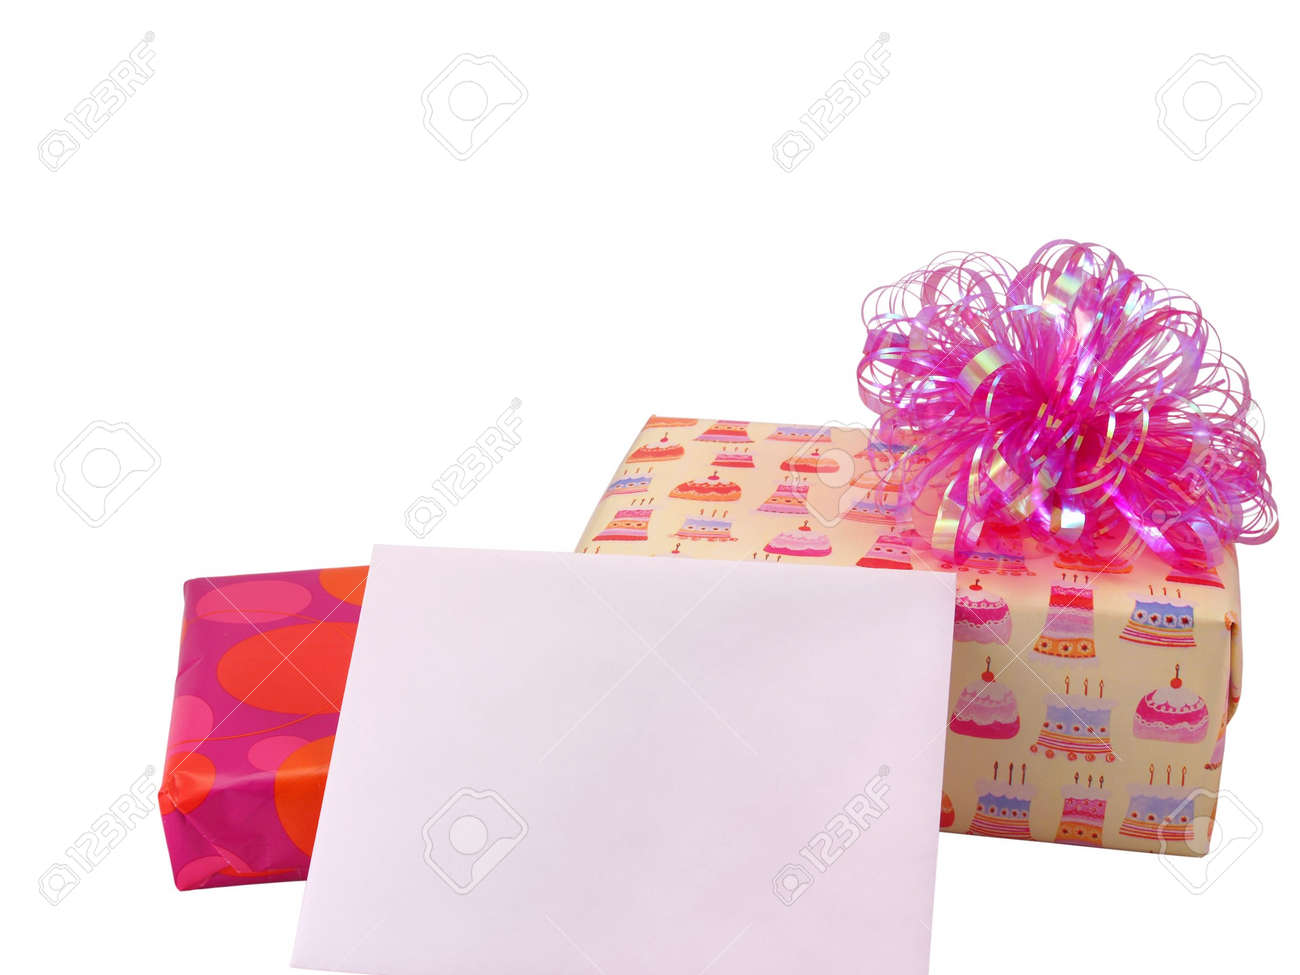 Two Wrapped Birthday Presents With Blank Card Envelope For Messages